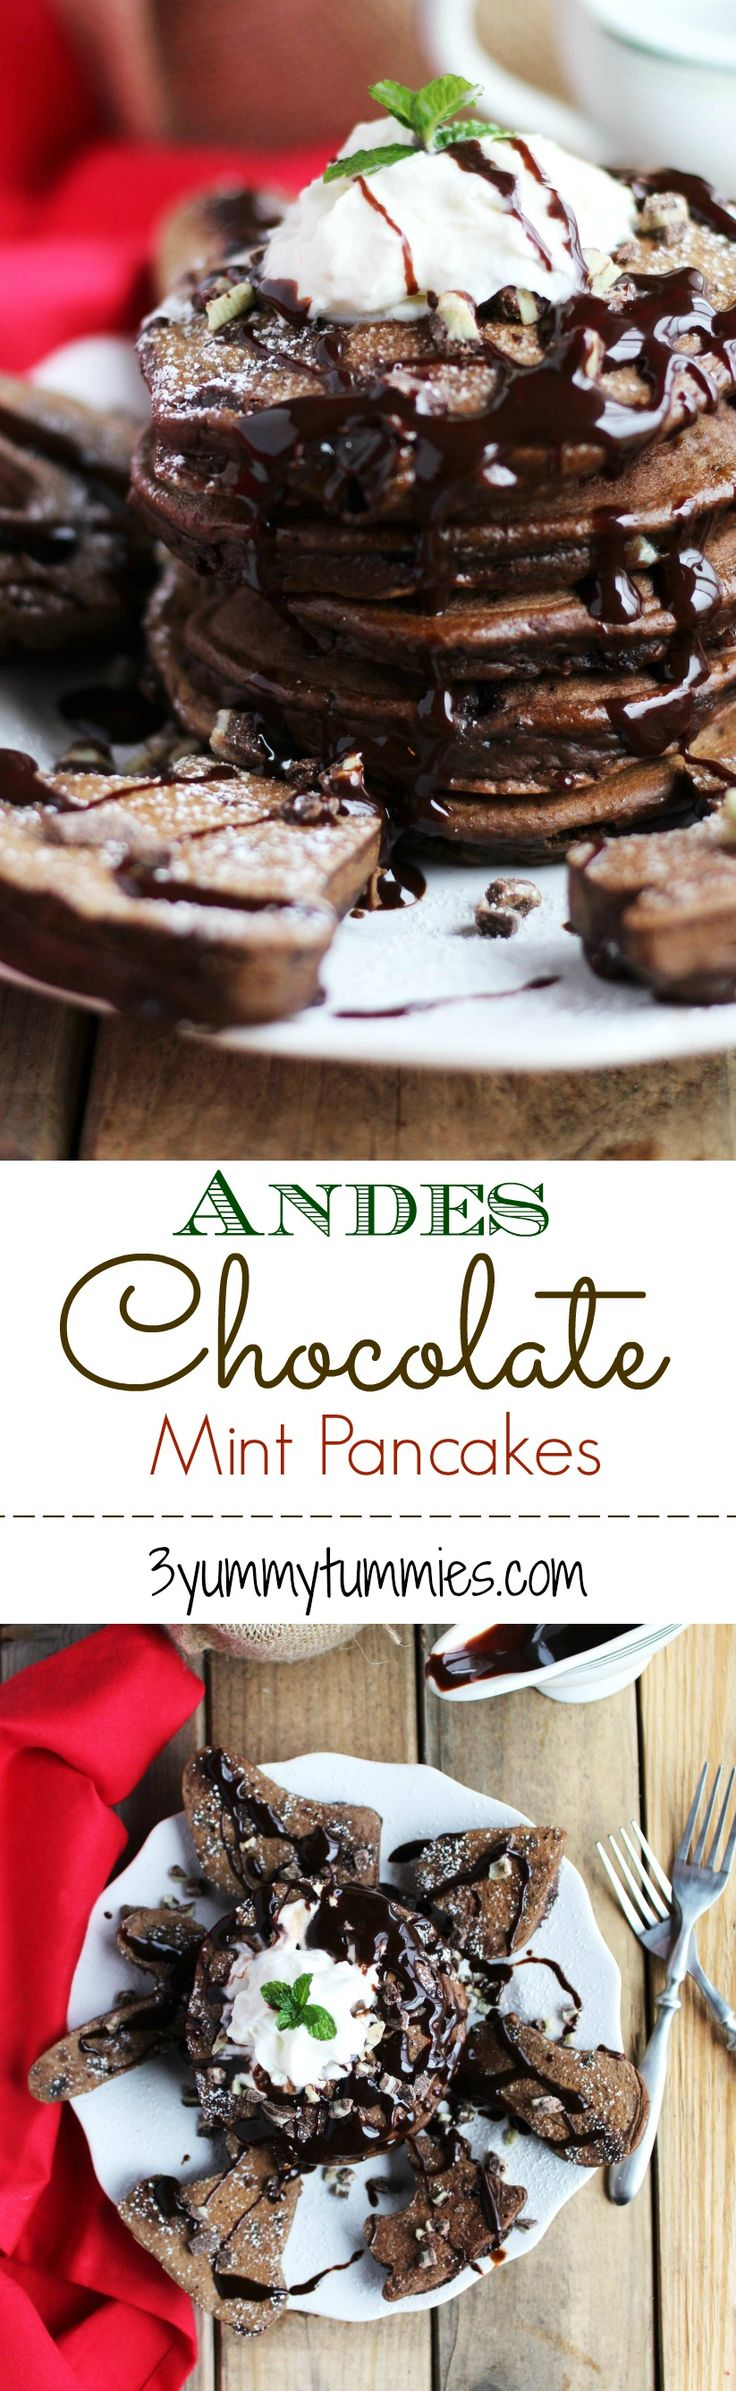 These perfectly fluffy pancakes are a chocolate lover's dream with Andes mint chips. Also, get great tips for perfect cookie cutter pancakes. These are so fun for the holidays.